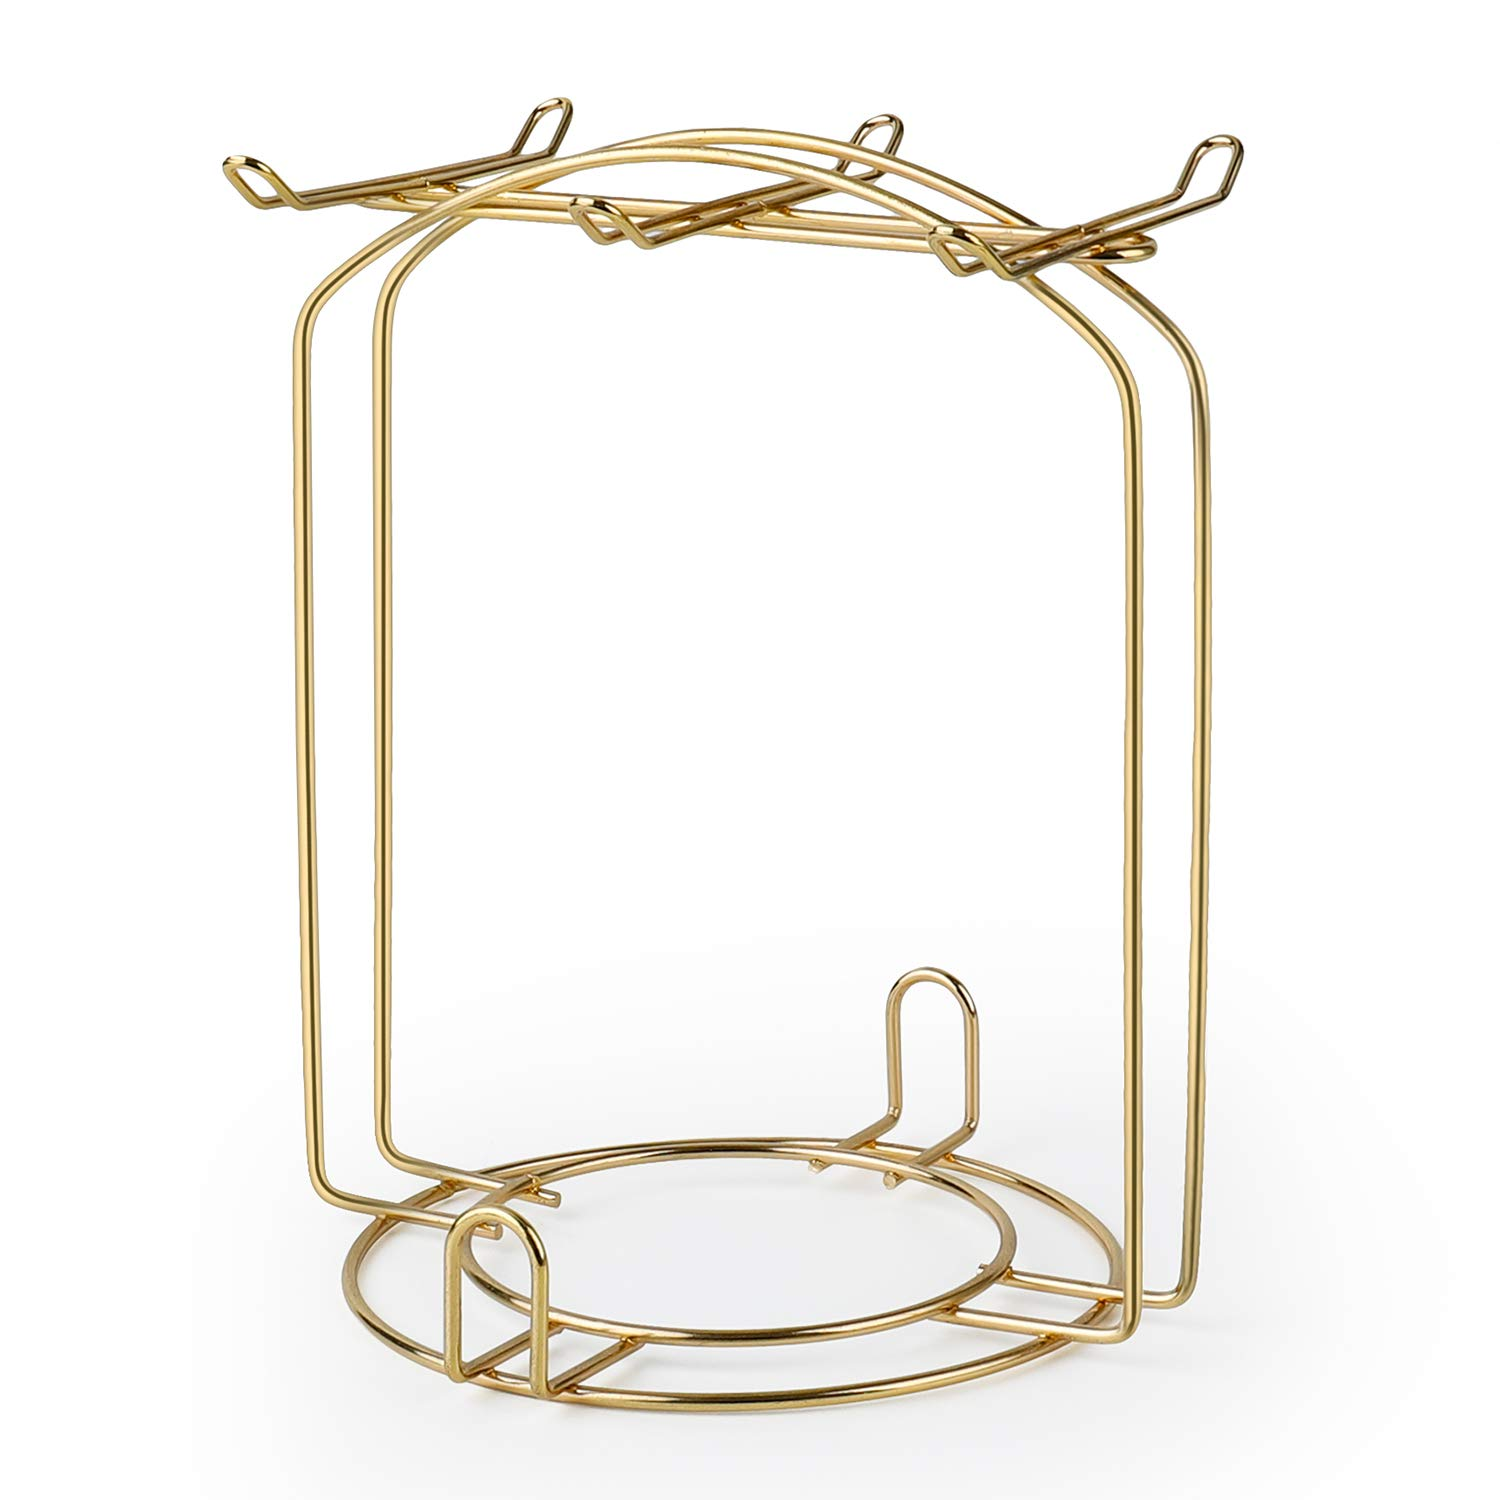 Stainless Steel Wire Rack Display Stand Service for Tea Cups,Bracket by Amazingware